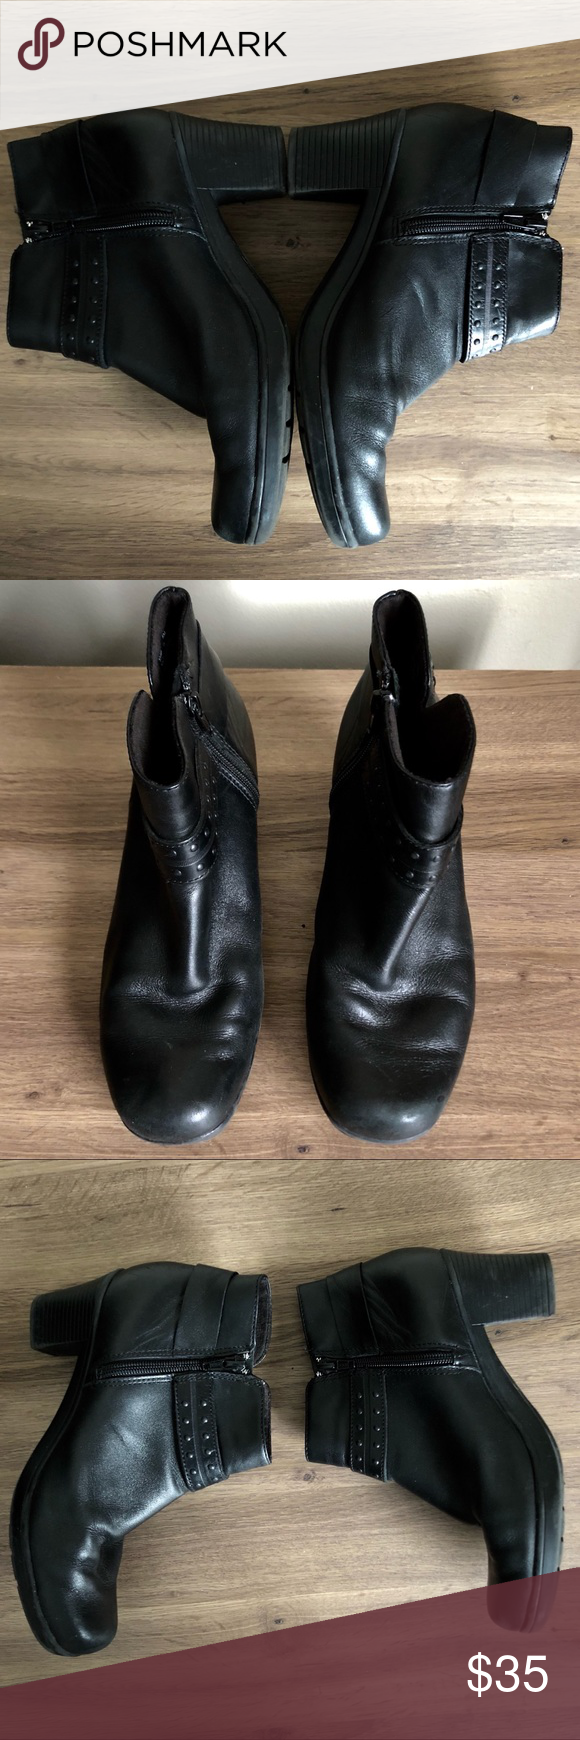 ac0b0fc2981 Clarks Dream Belle Bendables black leather boot In good condition Clarks  Shoes Ankle Boots   Booties